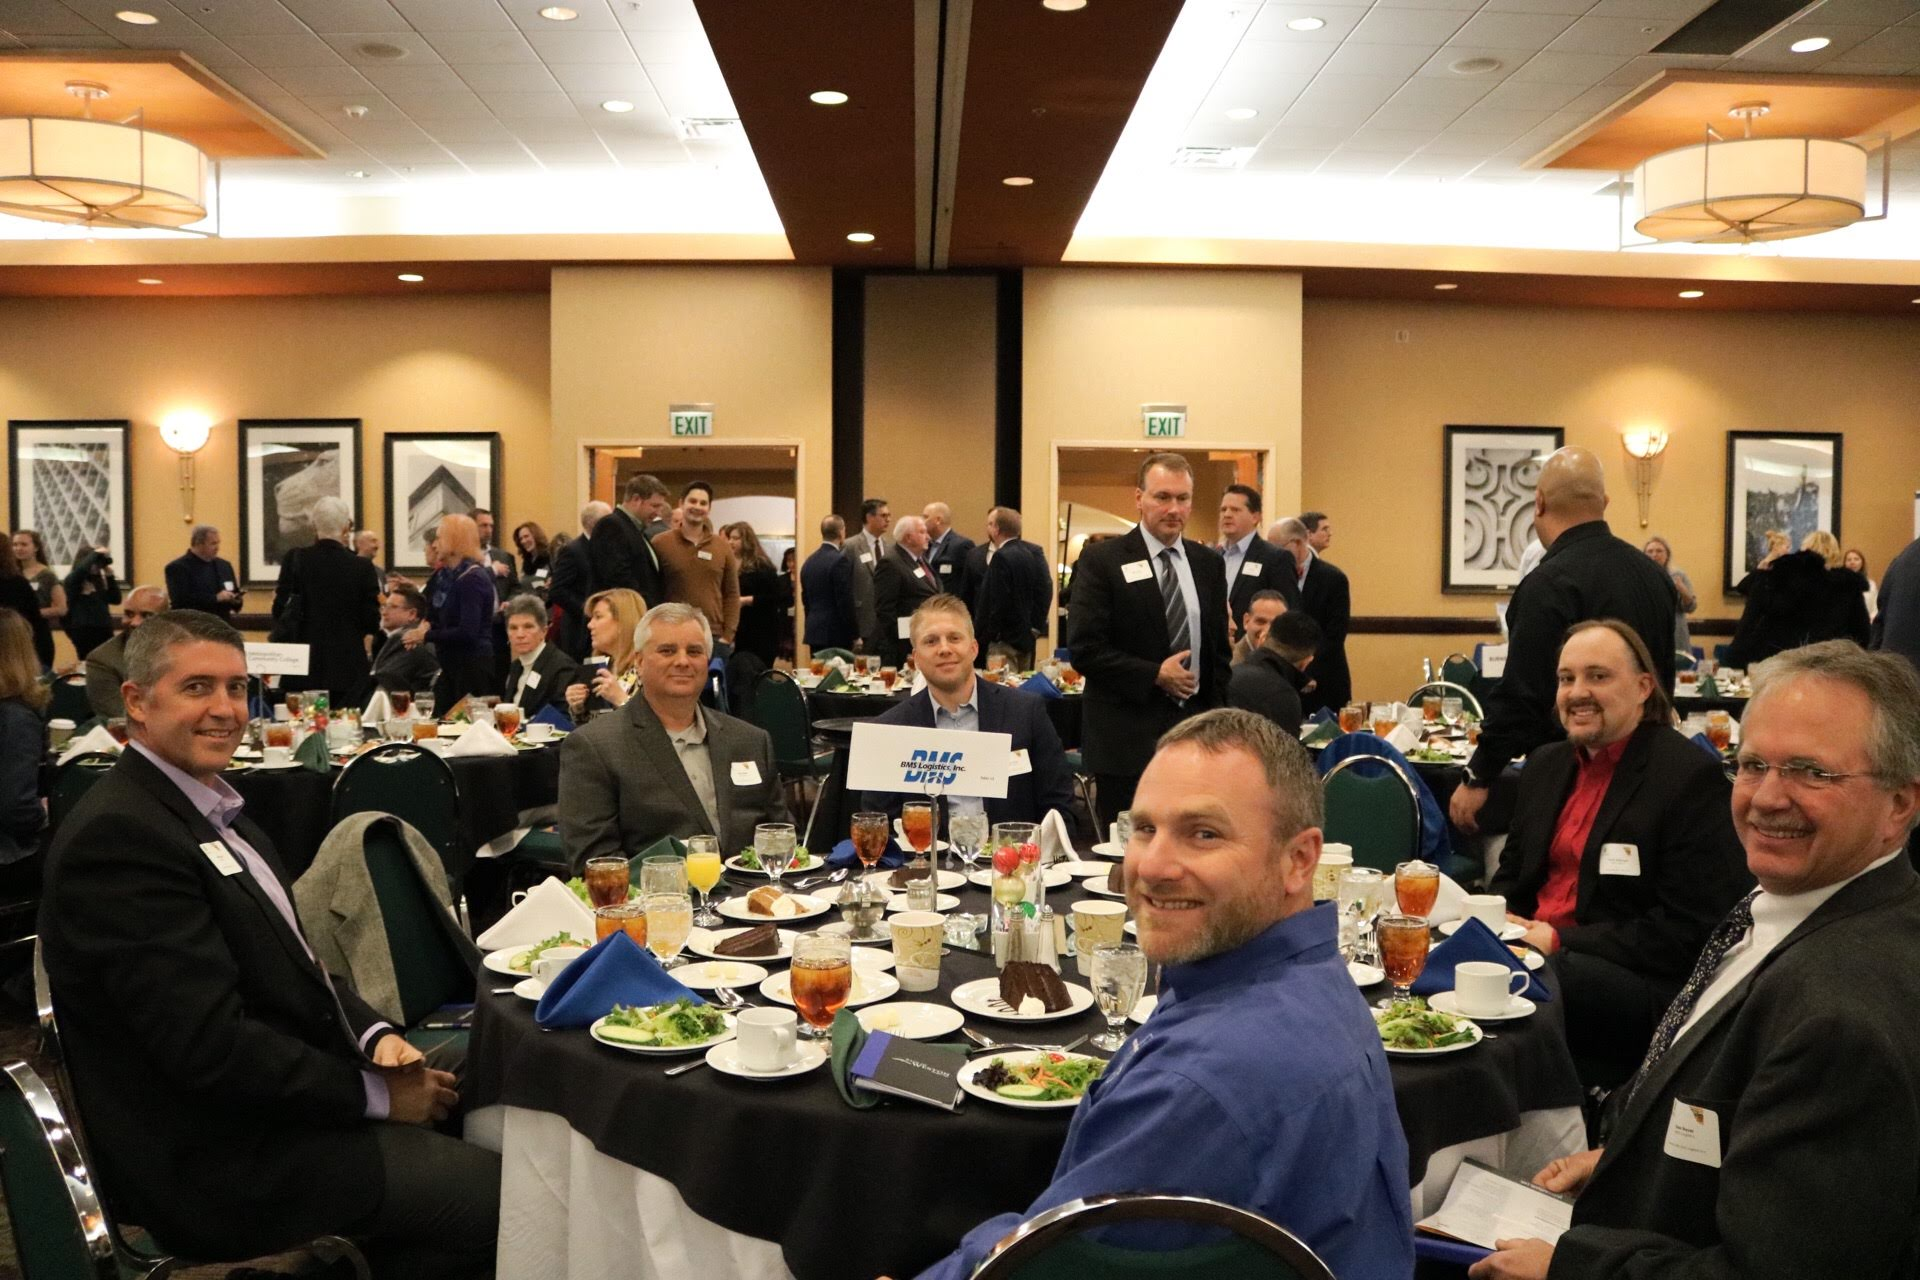 Platte County council honors standout small businesses